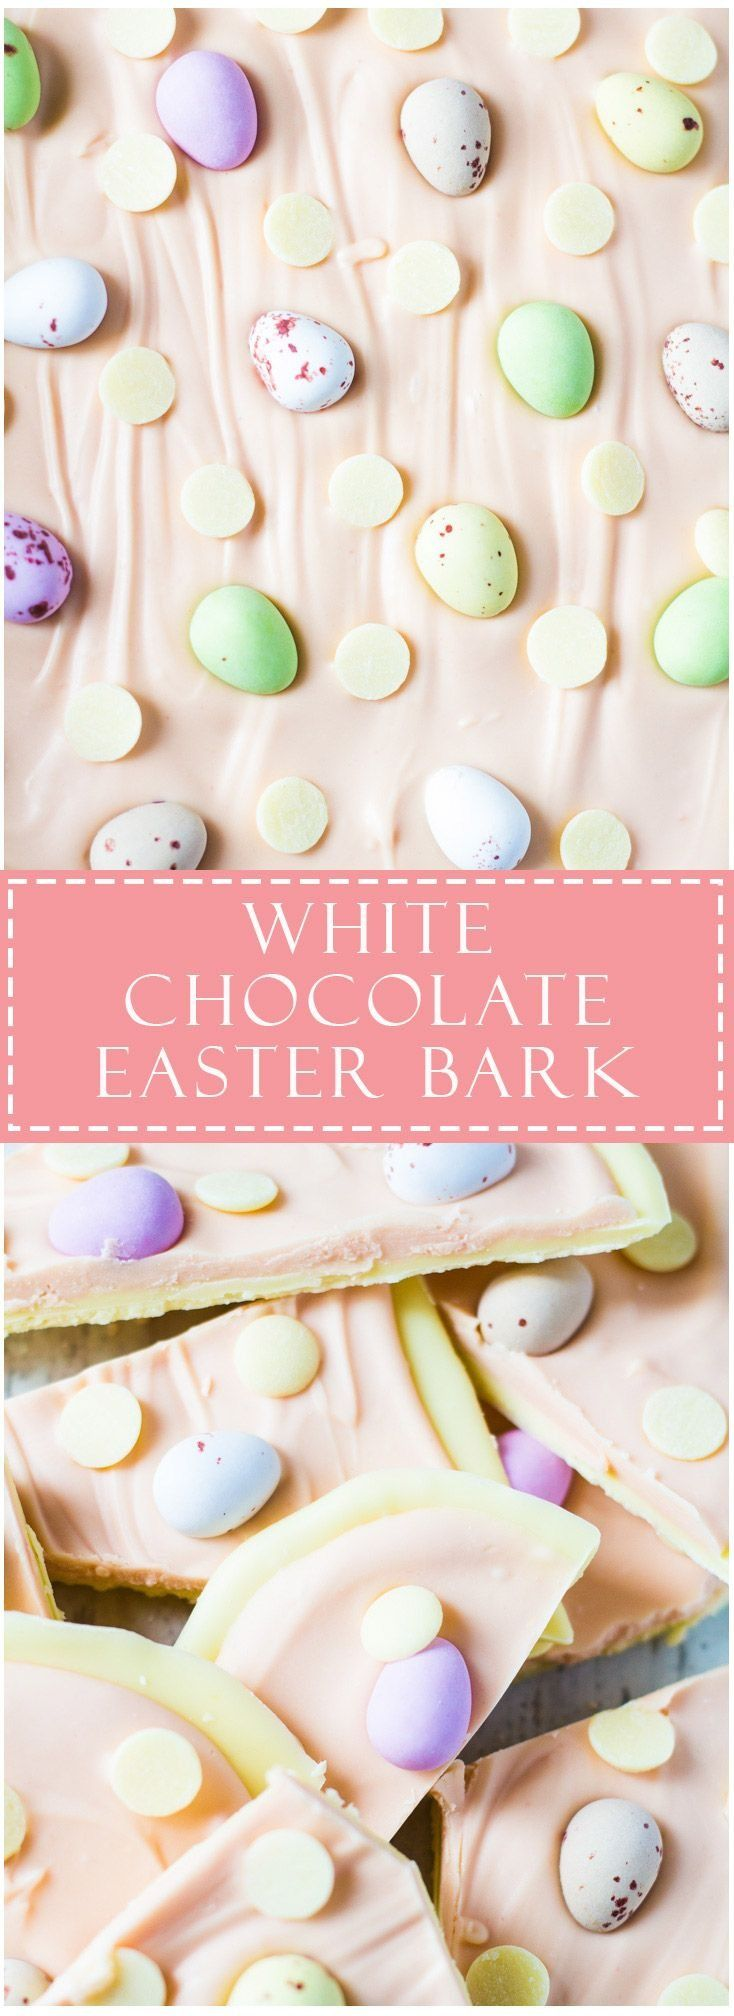 A white chocolate layer topped with pink white chocolate, and studded with Cadbury Mini Eggs and white chocolate chips!